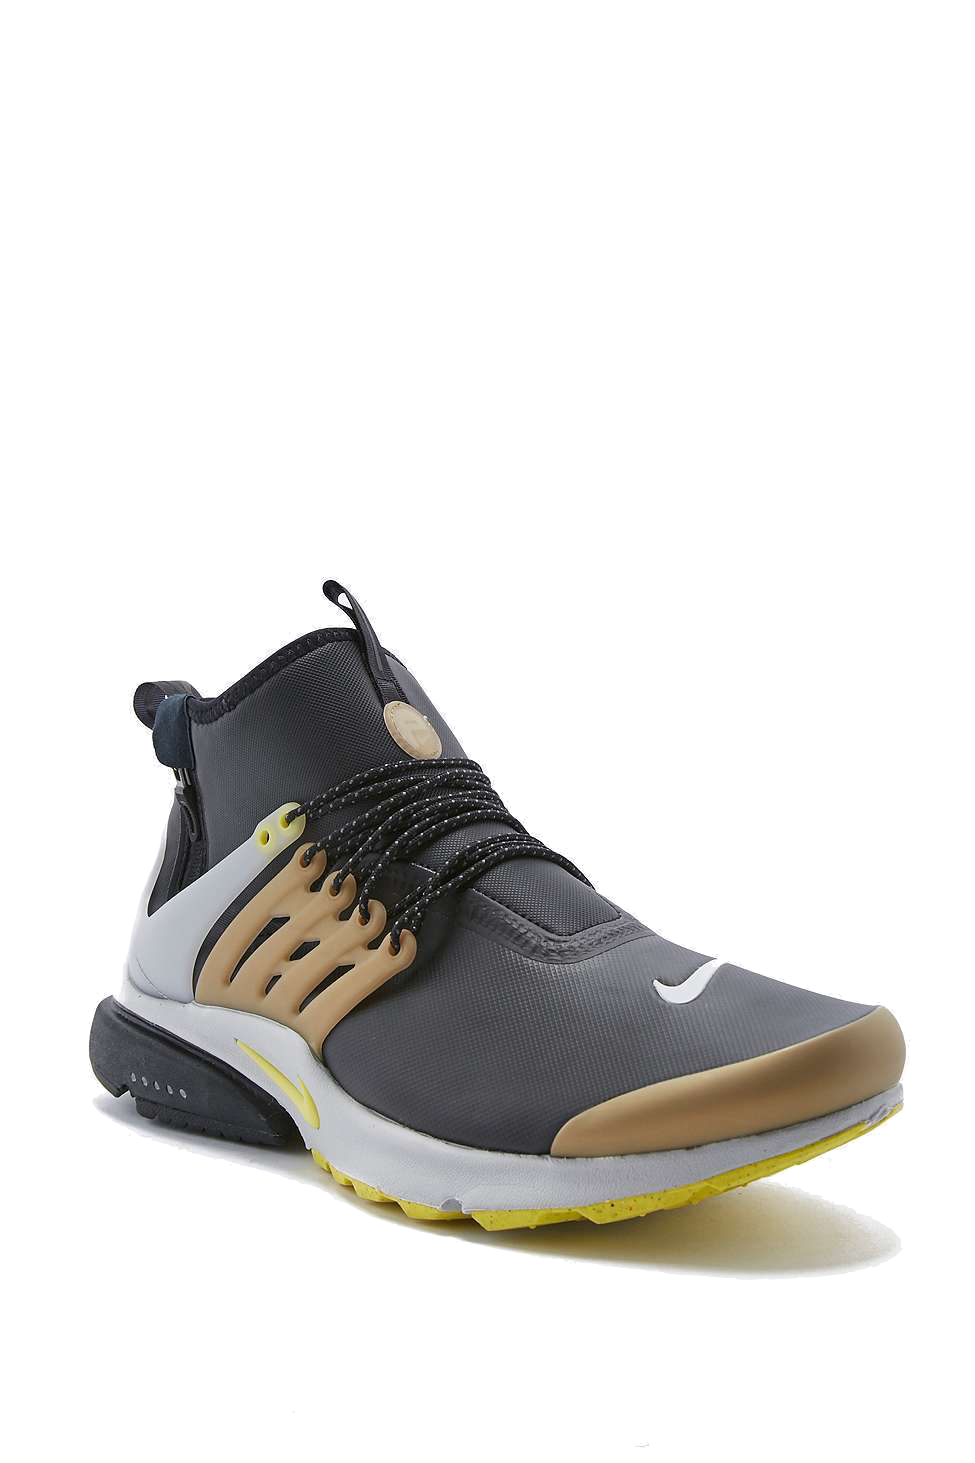 Nicke Air Presto High Sneaker